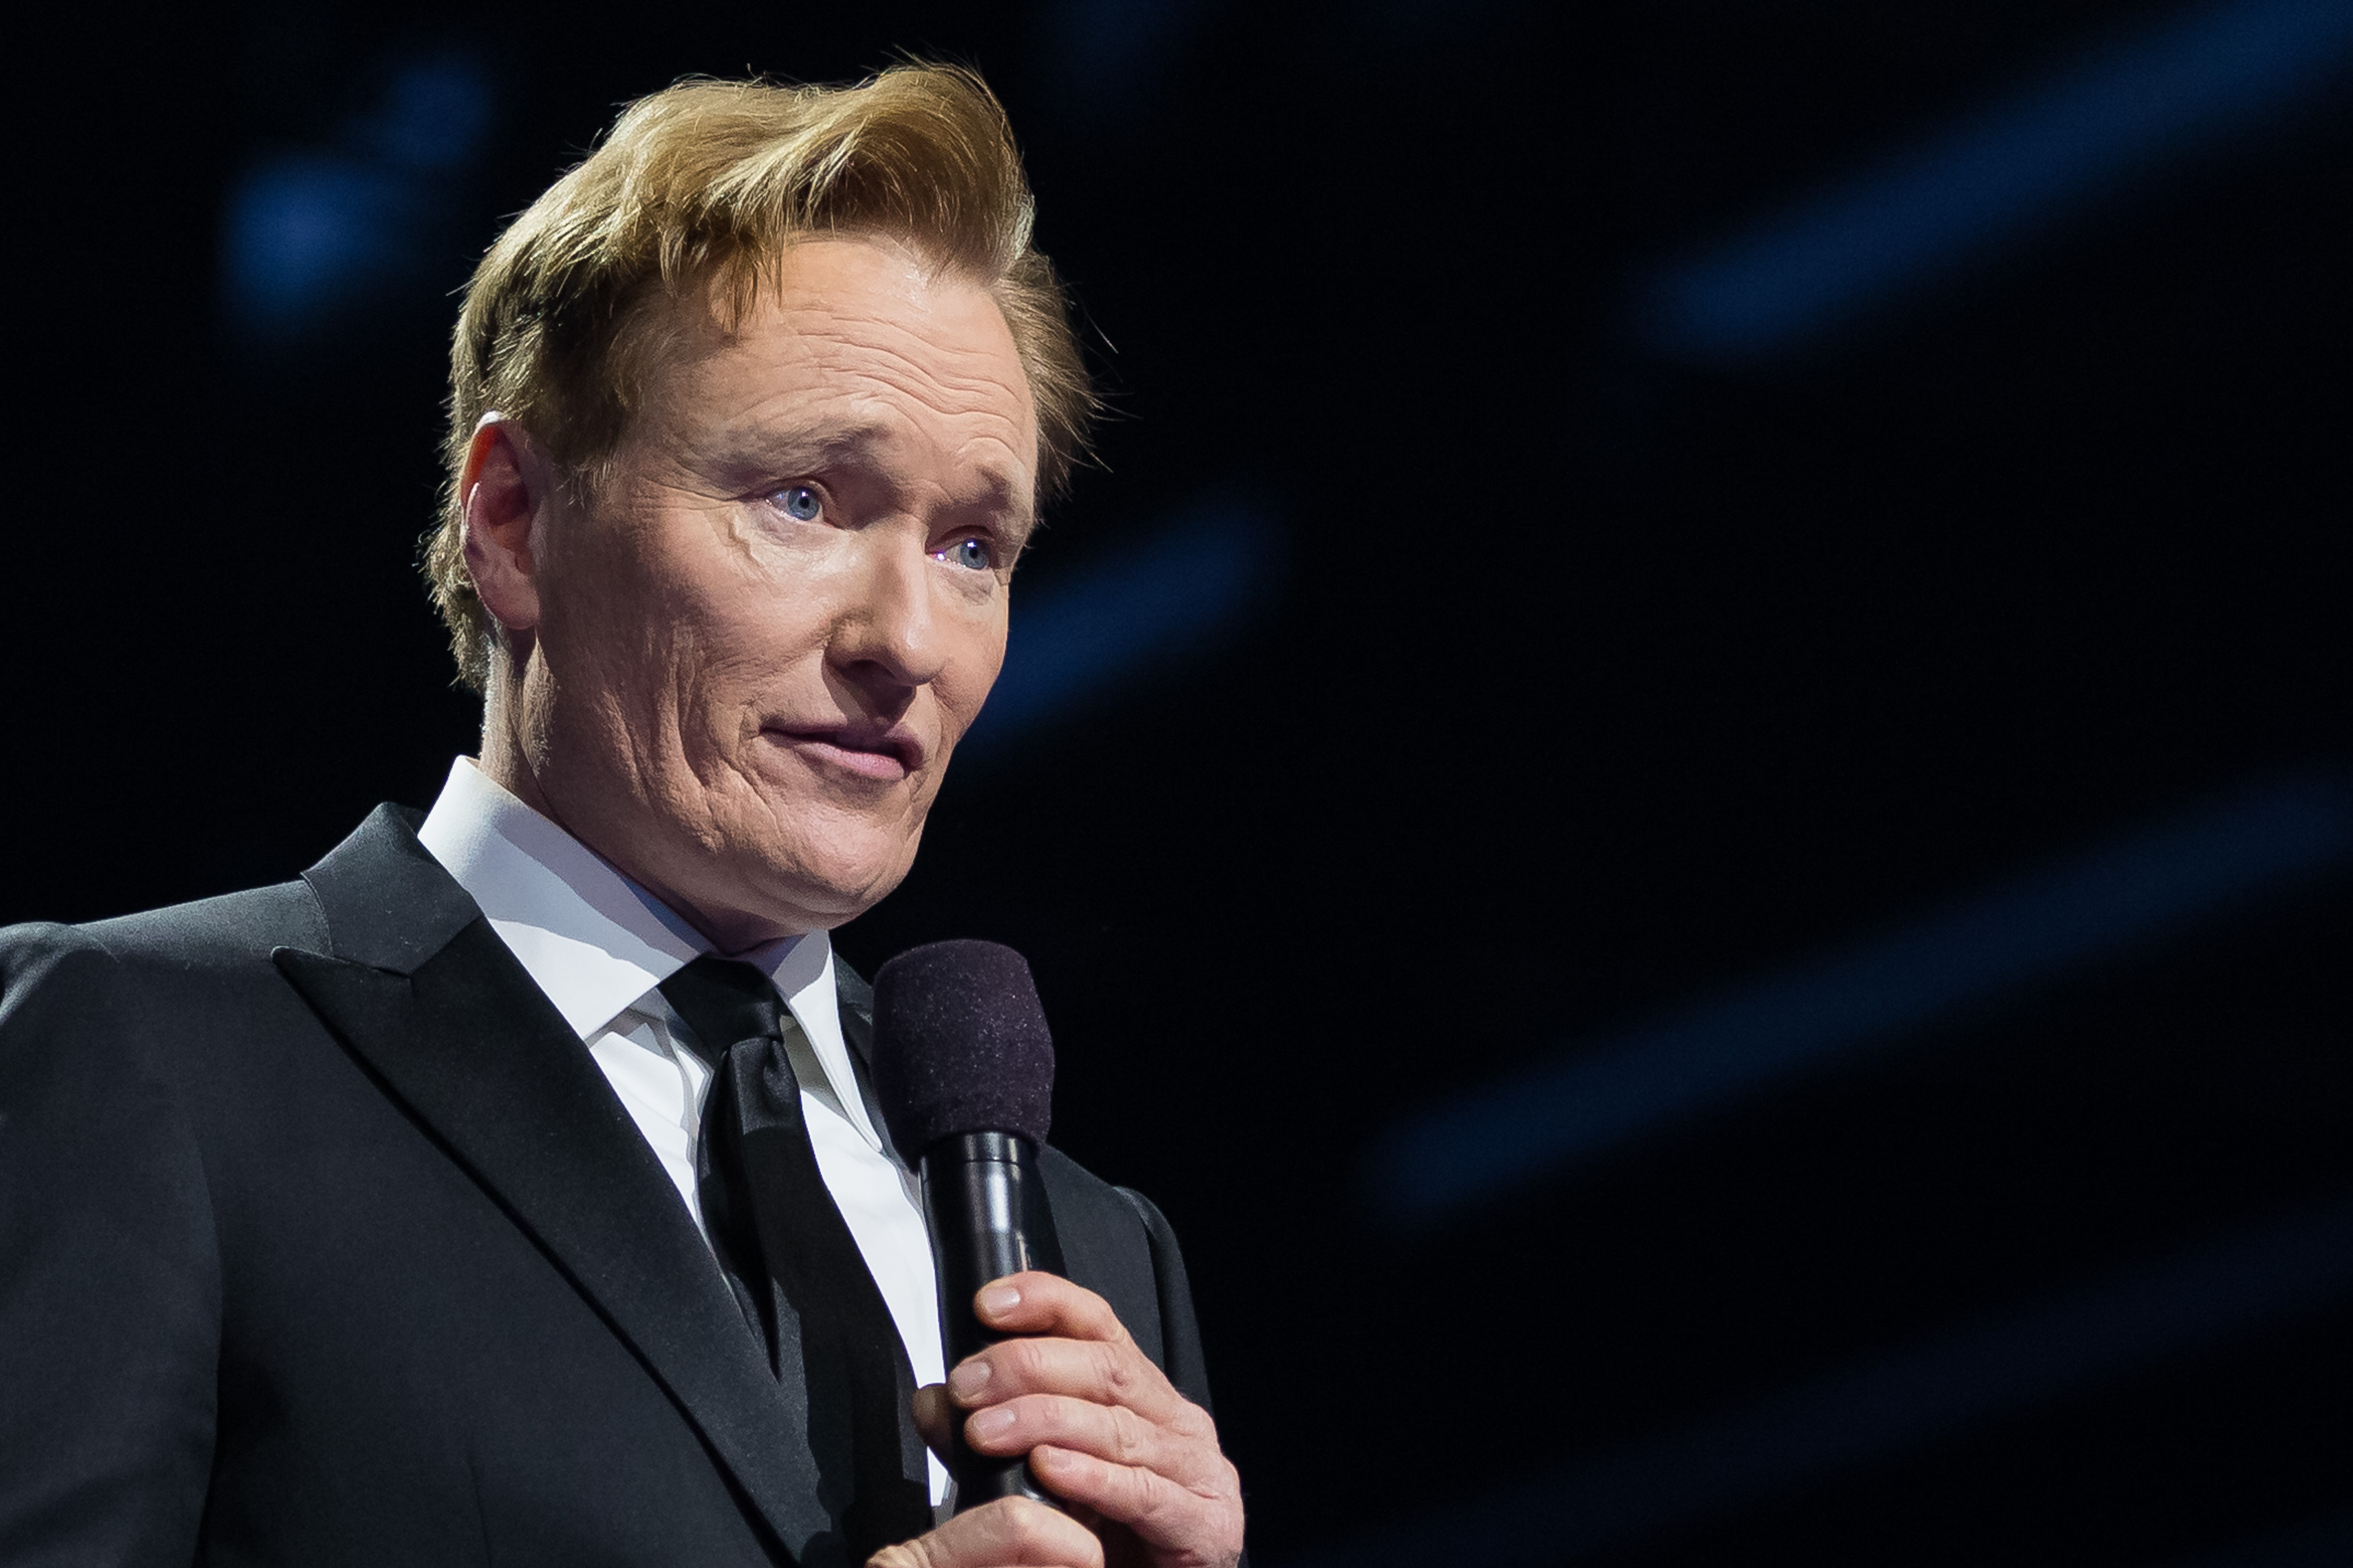 Report: Conan O'Brien's TBS Show Will Switch to Weekly Format